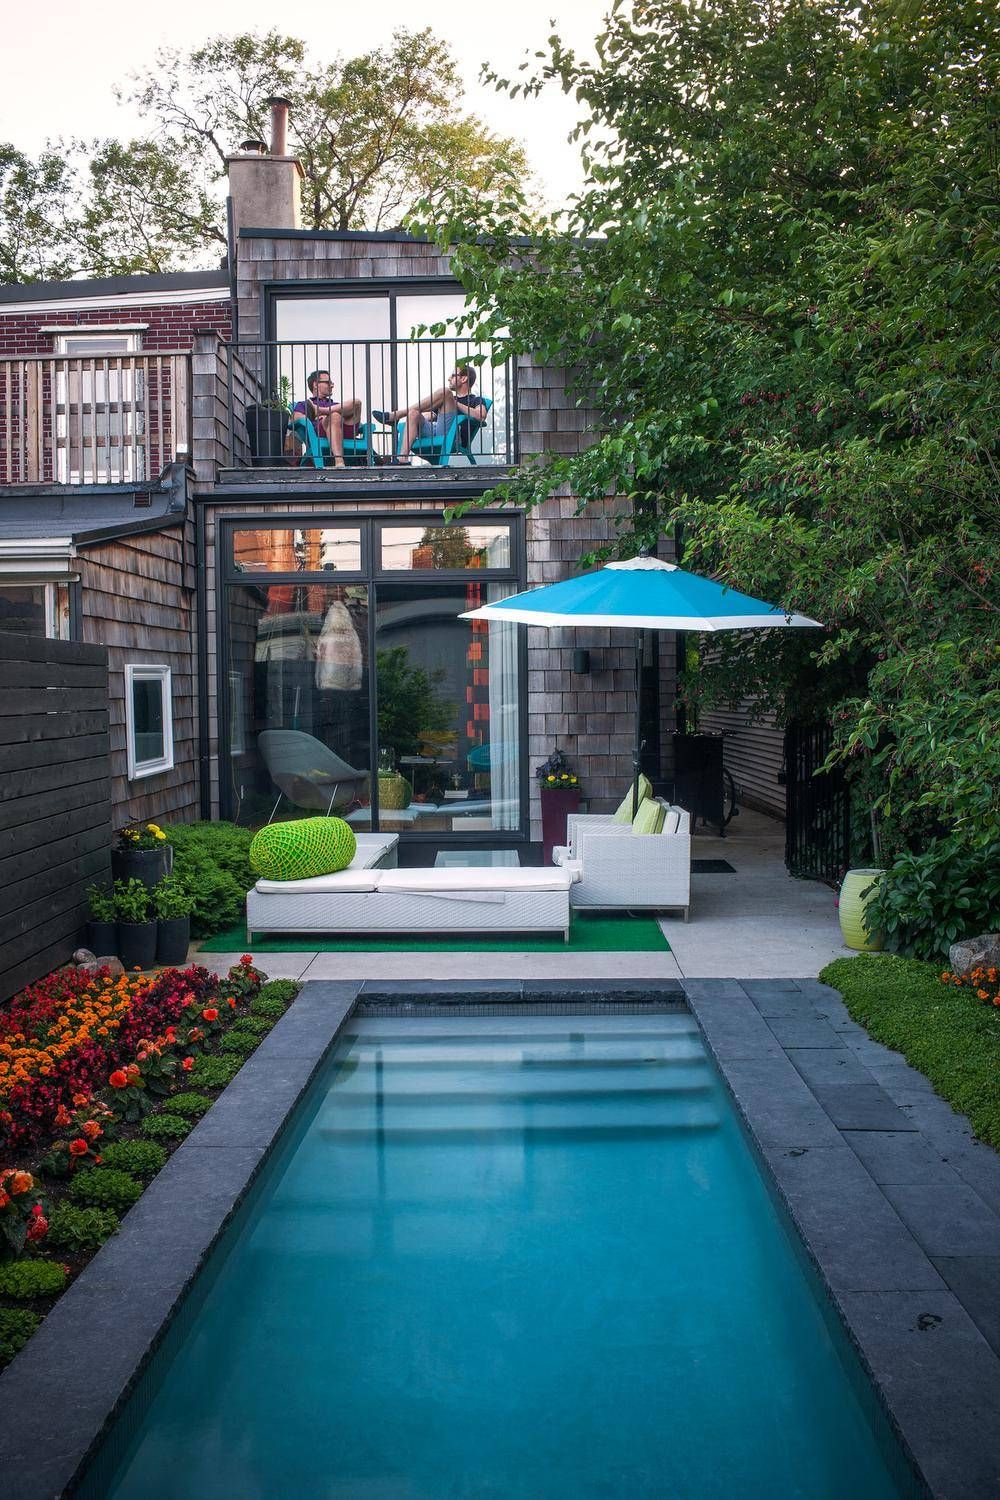 A look at four novel pool designs that are making waves | Pool ...